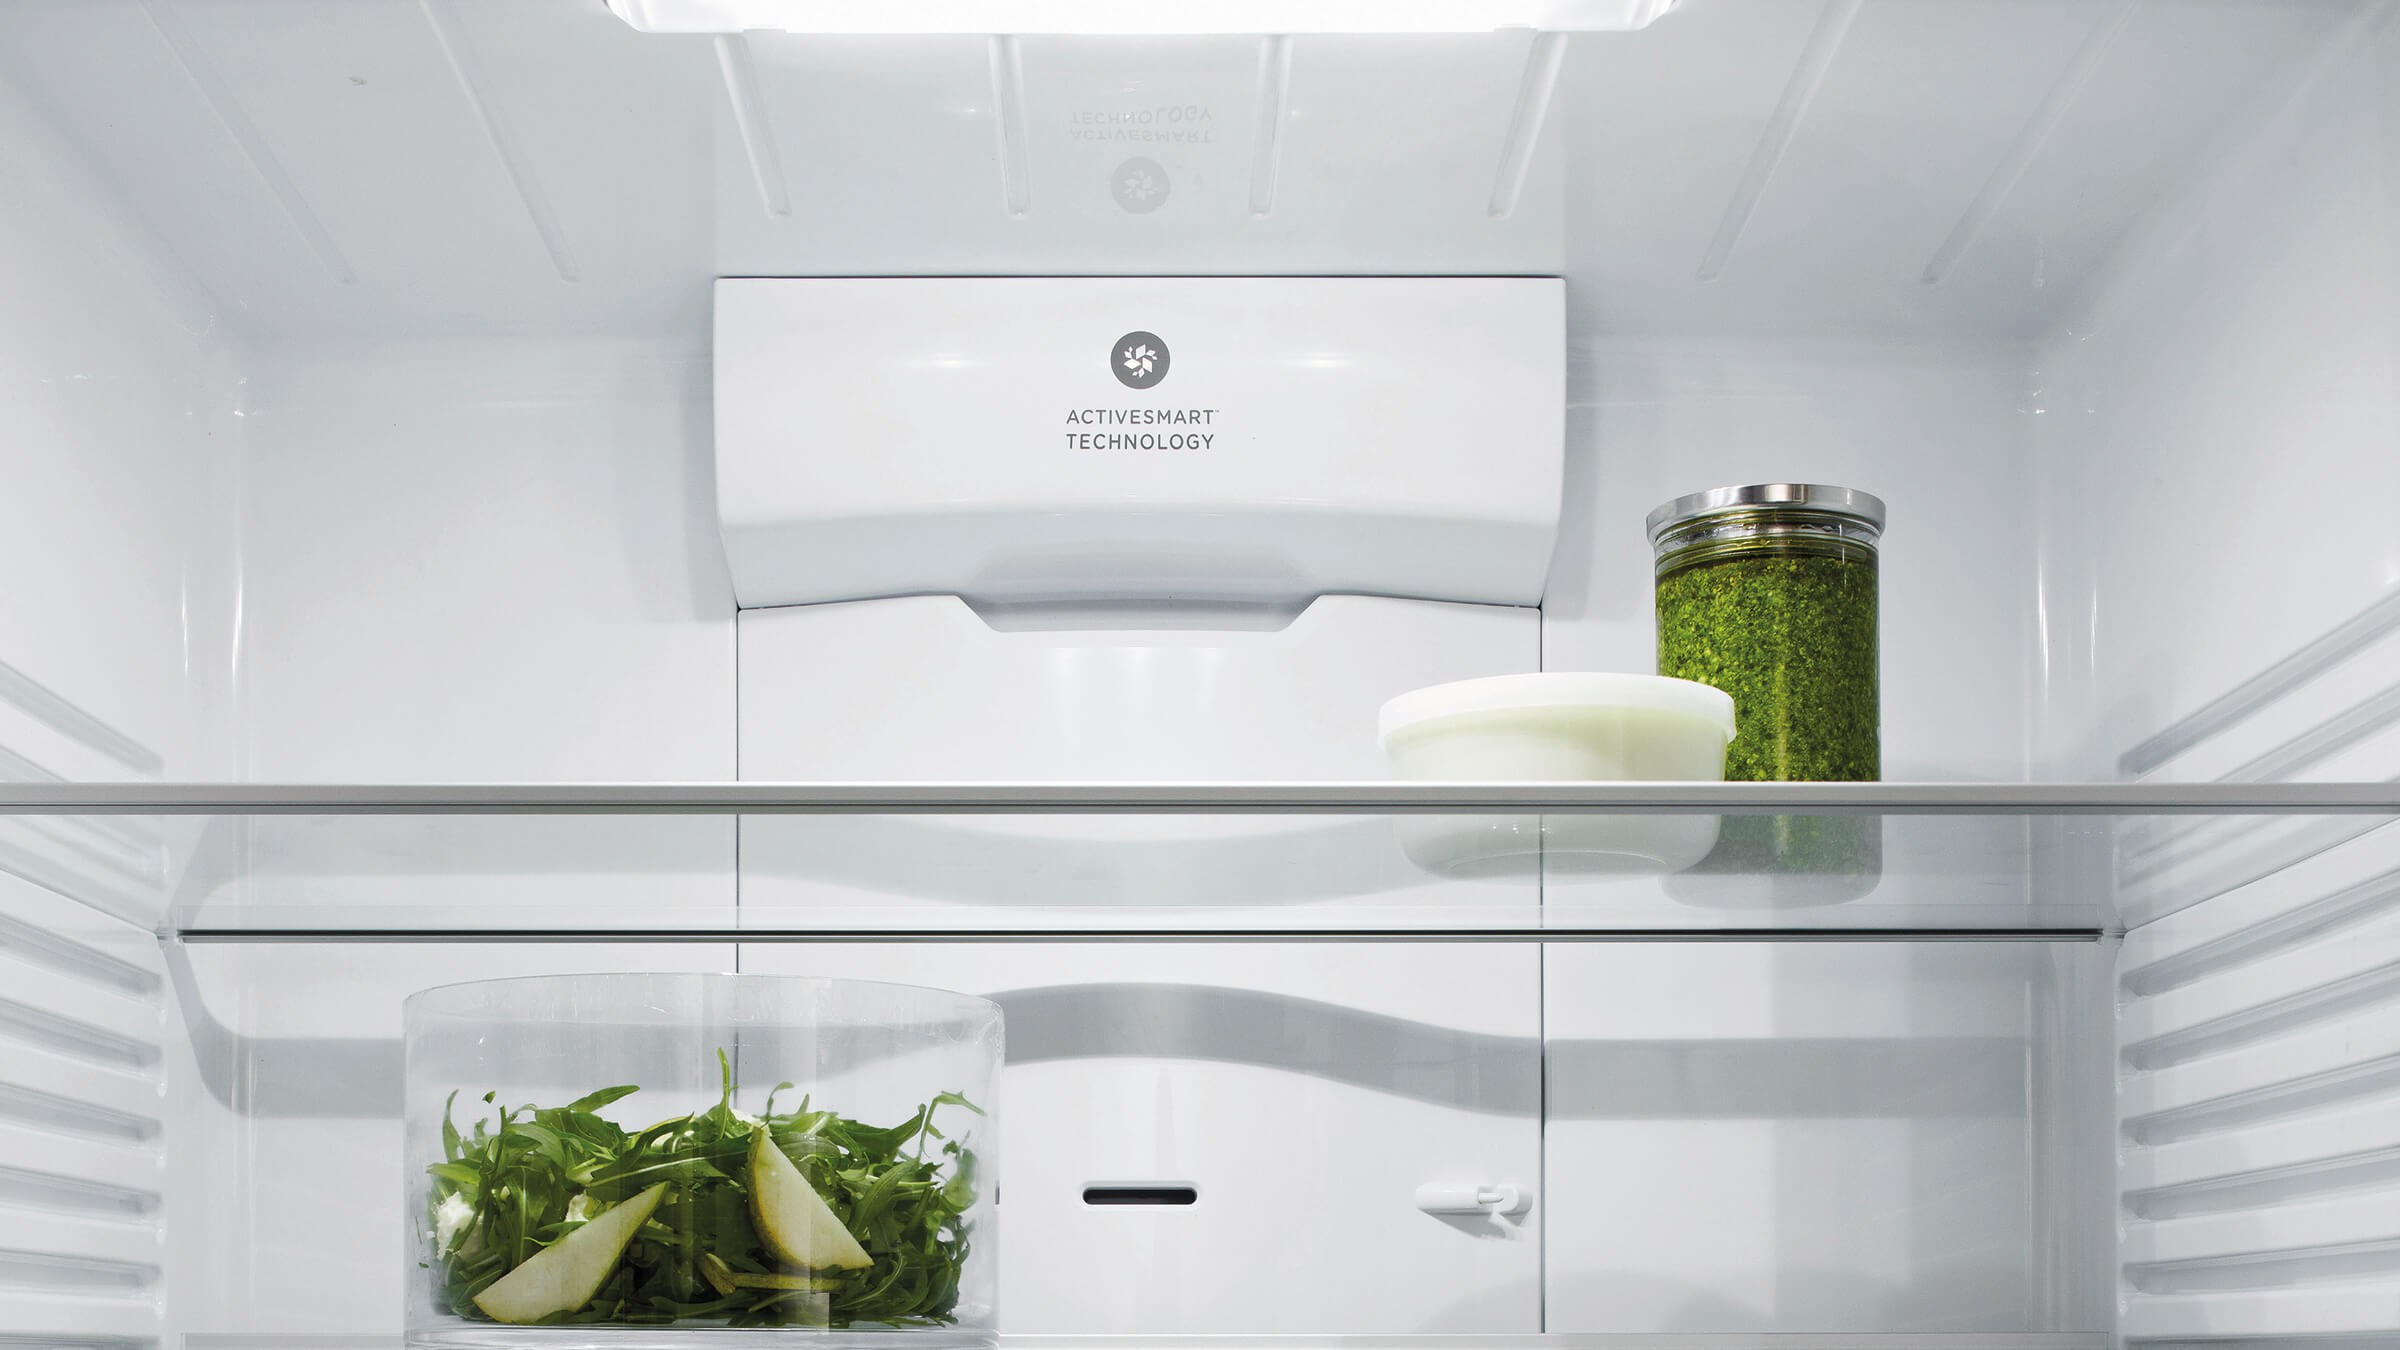 Fisher and paykel french door fridge reviews - Fresher Food For Longer